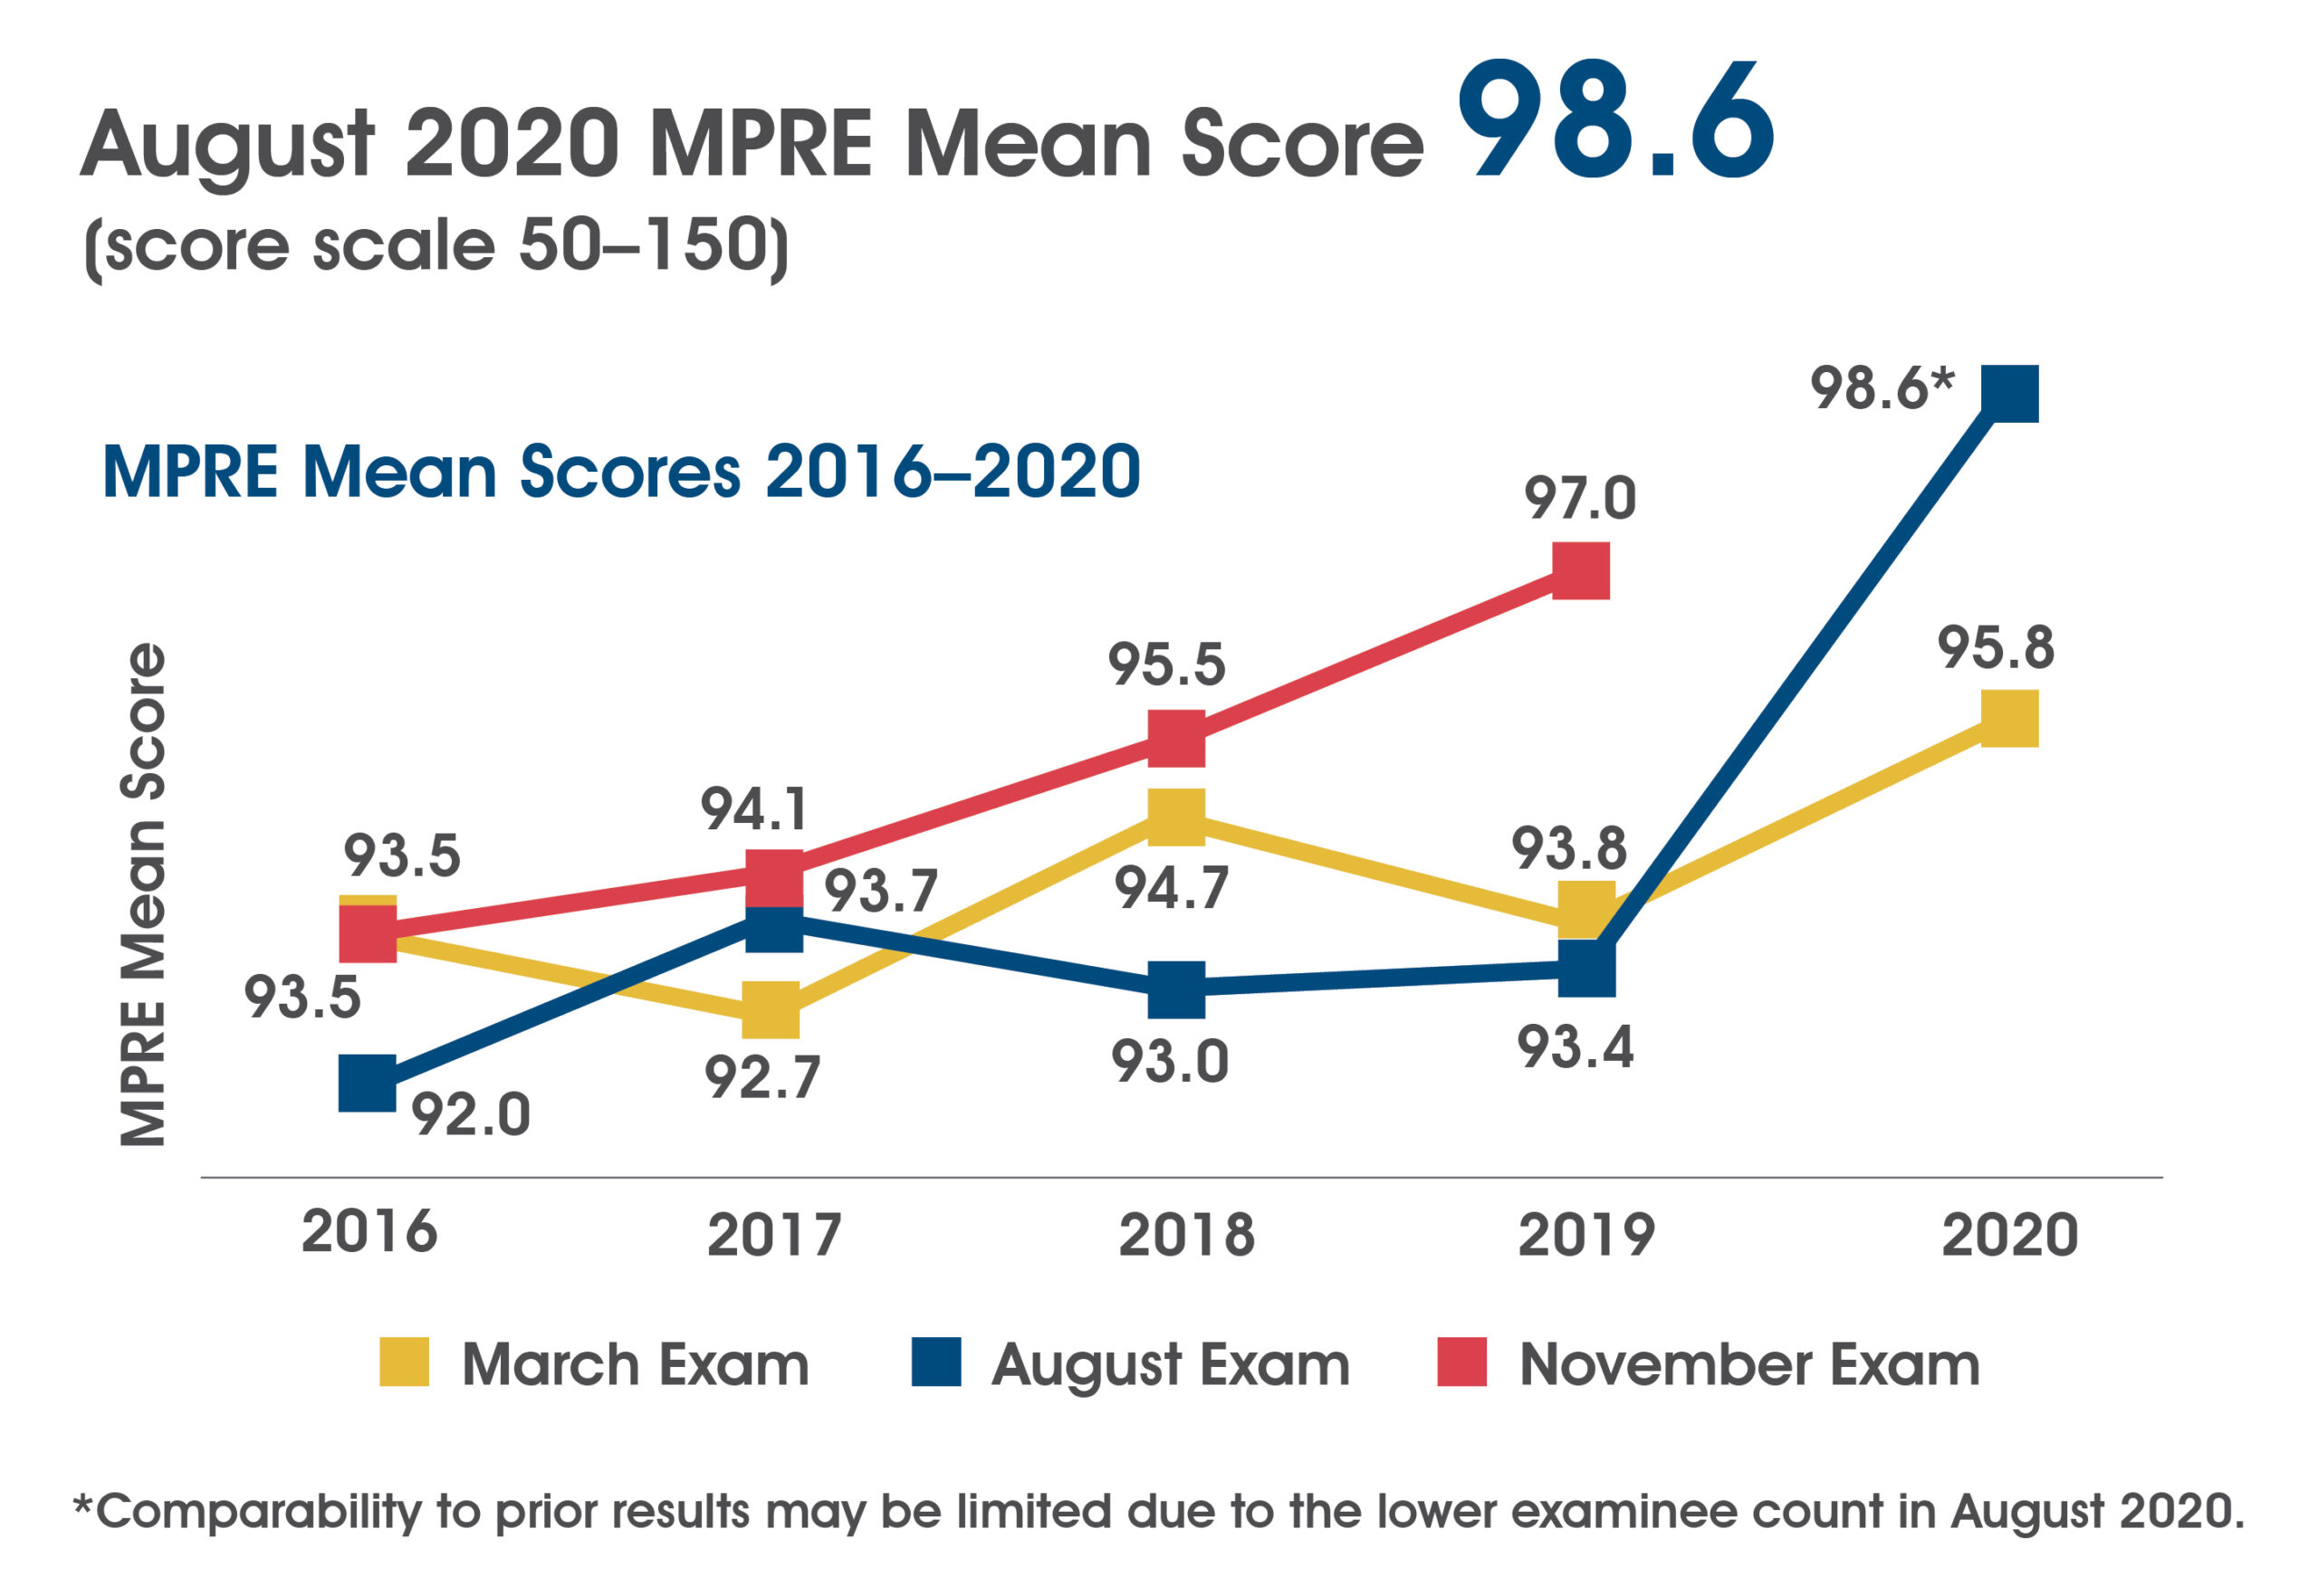 A chart showing MPRE mean scores 2016-2020. In March 2016-2020 the mean score was 93.5, 92.7, 94.7, 93.8, and 95.8. In August 2016-2020 the mean score was 92.0, 93.7, 93.0, 93.4, and 98.6. In November 2016-2019 the mean score was 93.5, 94.1, 95.5, and 97.0. The August 2020 mean score includes the following note: Comparability to prior results may be limited due to the lower examinee count in August 2020.